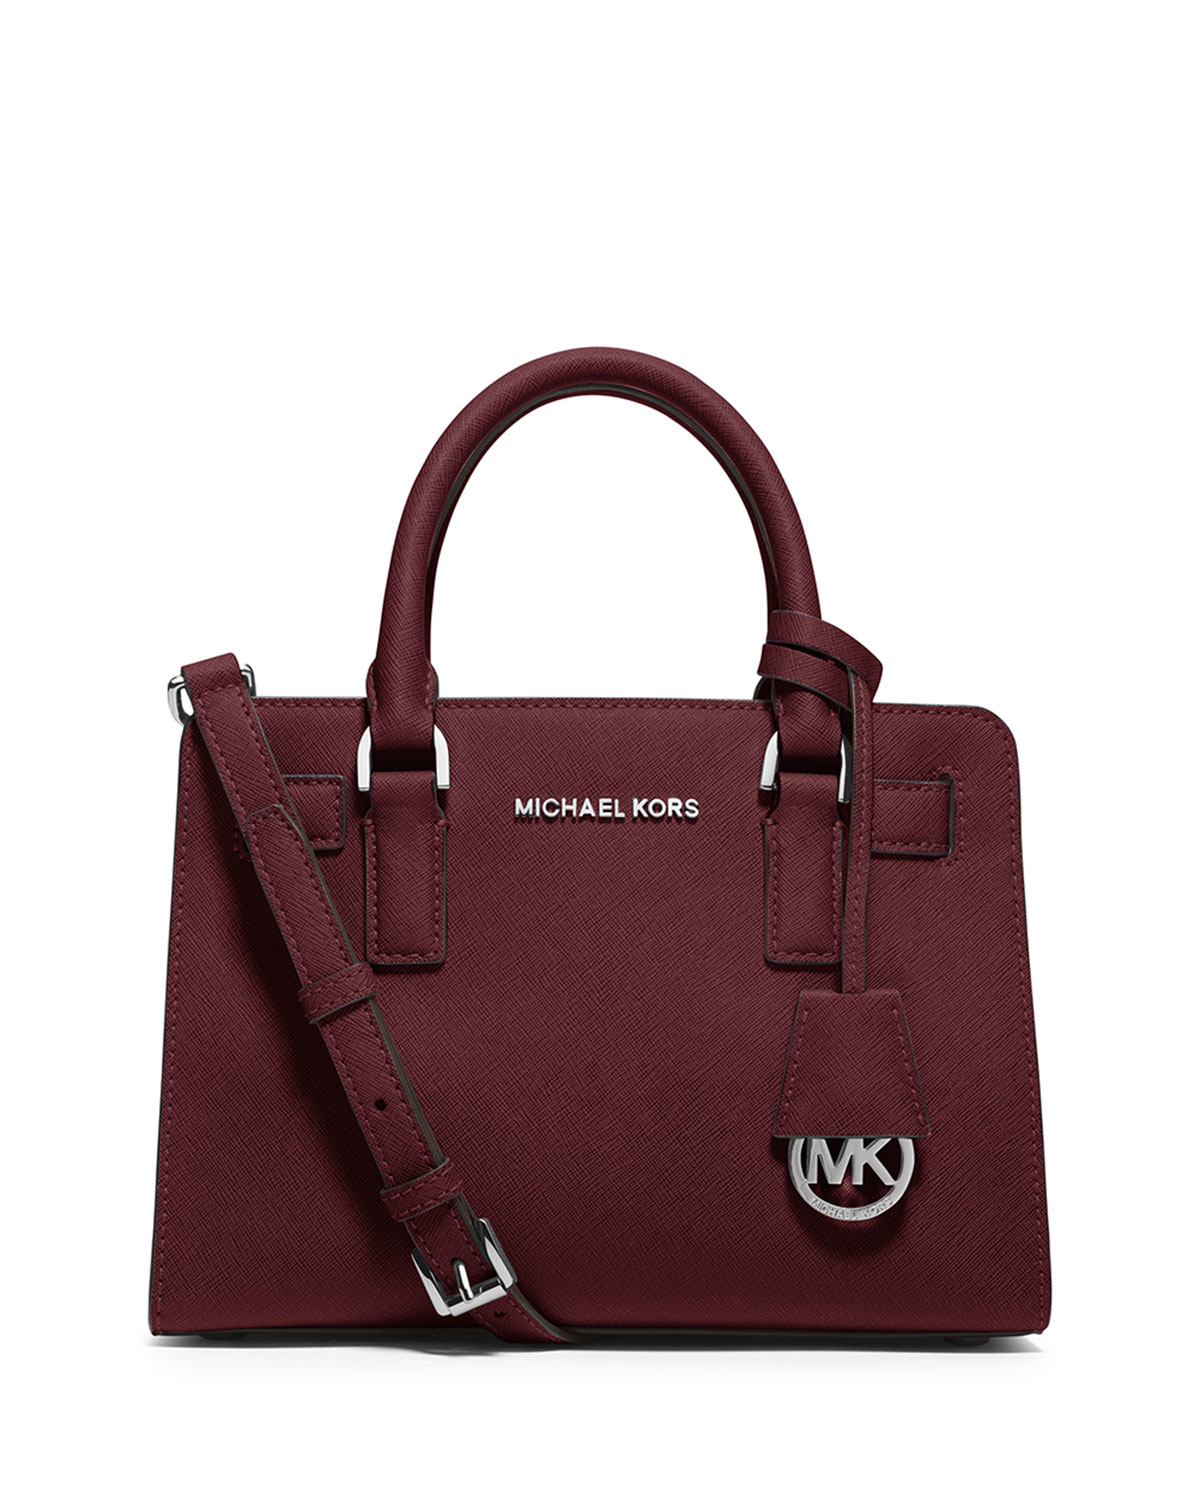 521156cd7f03 MICHAEL Michael Kors Dillon Small Leather Satchel Bag in Red - Lyst